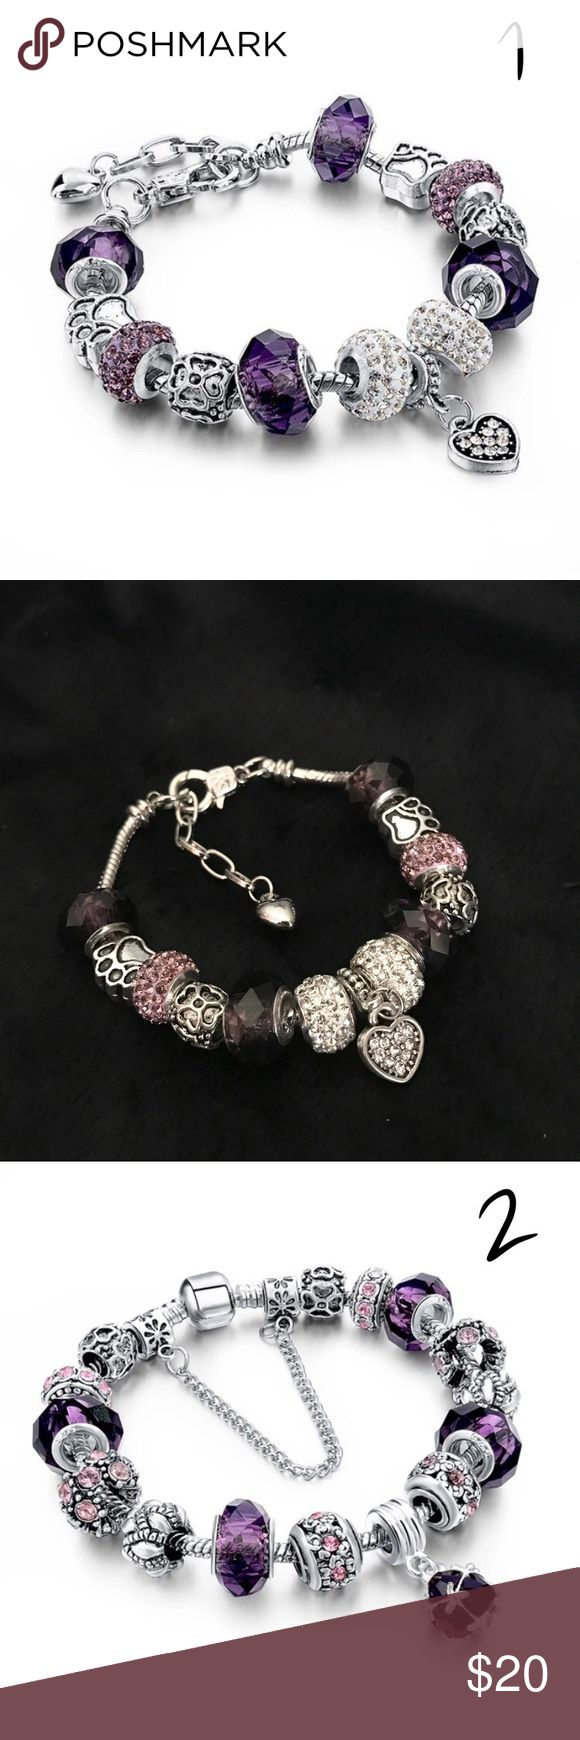 """1 Silver Plated Charm Bracelets Pink/ Purple Brand new Price firm  1) Purple Colored Charm Bracelet, 2) Pink Colored Charm Bracelet, 3) Pink&Purple Colored Charm Bracelet  Alloy Metal Silver Plated Austrian Crystals Length: 8"""" adjustable Comes in velvet pouch  #2 Bracelet has pink charms not purple like in stock photo, and #3 bracelet has pink with purple charms like in pictures i have taken. Jewelry Bracelets"""